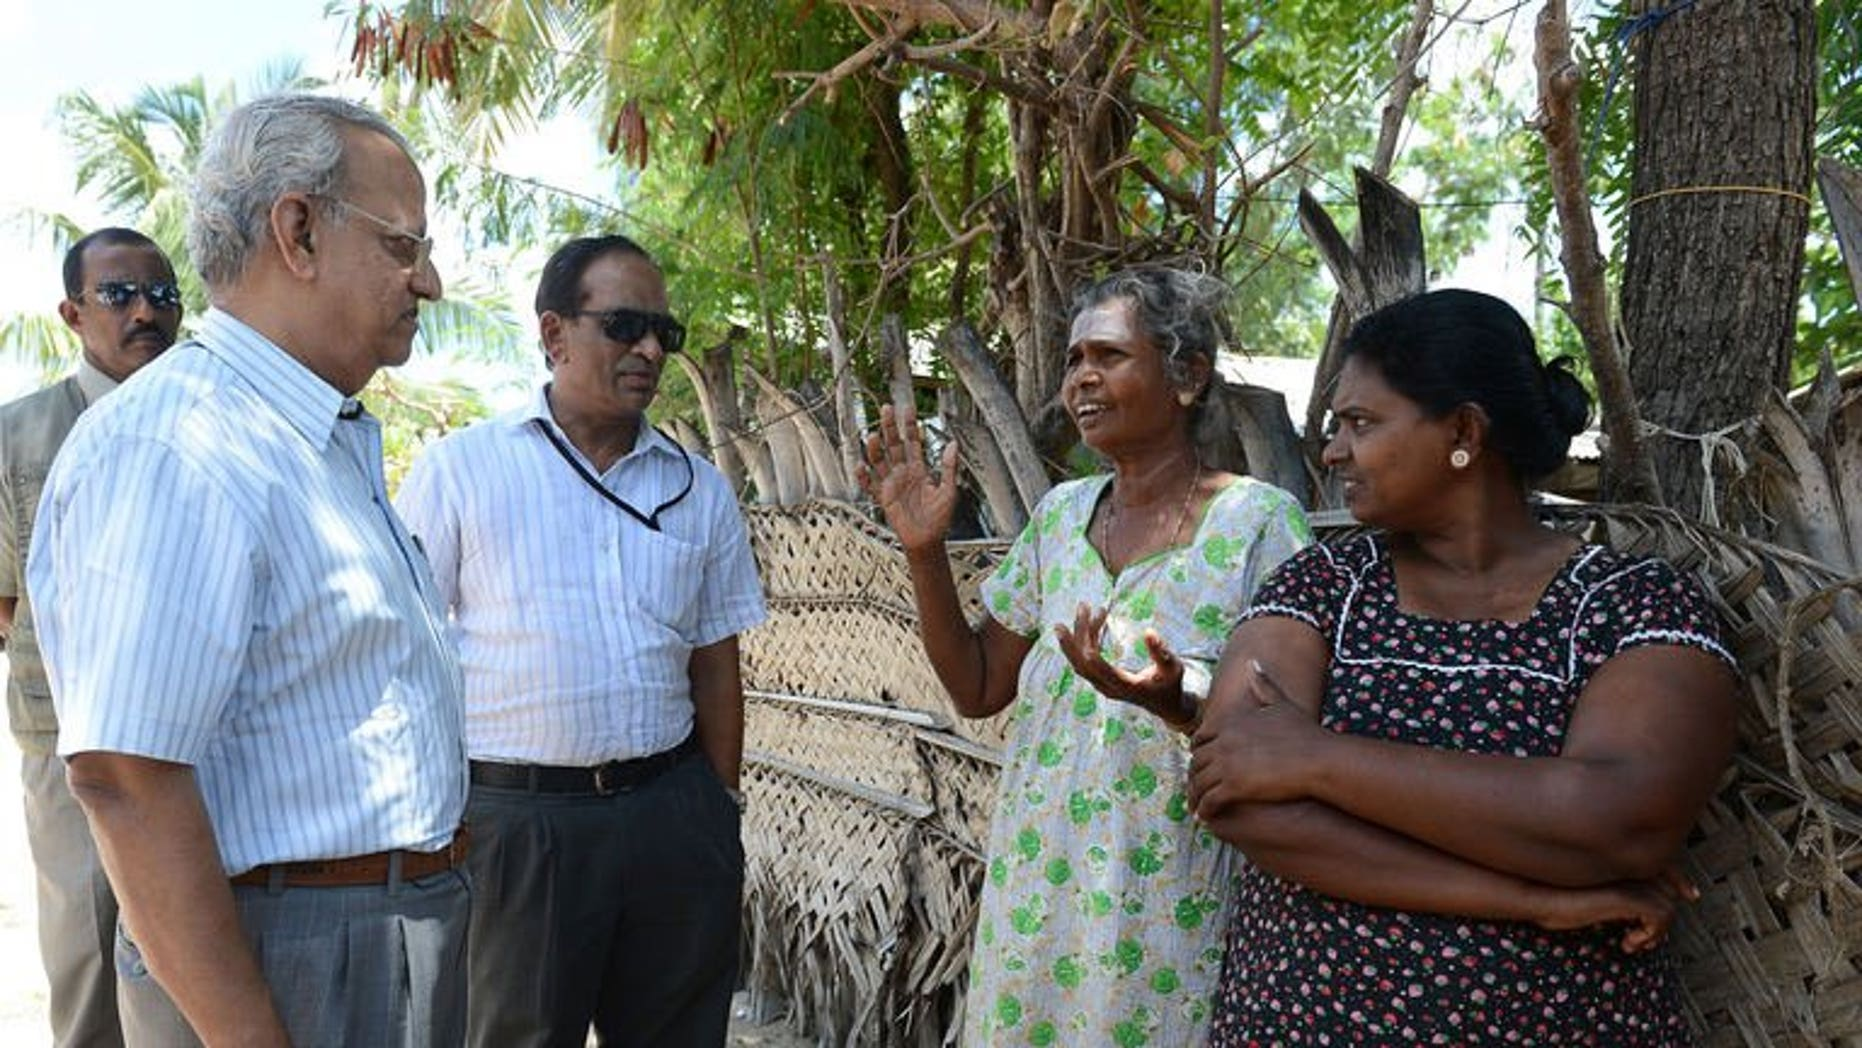 Foreign observers speak with Sri Lankan Tamil residents at The Kanniamman Welfare Centre at the country's northern most tip of Point Pedro on September 19, 2013.